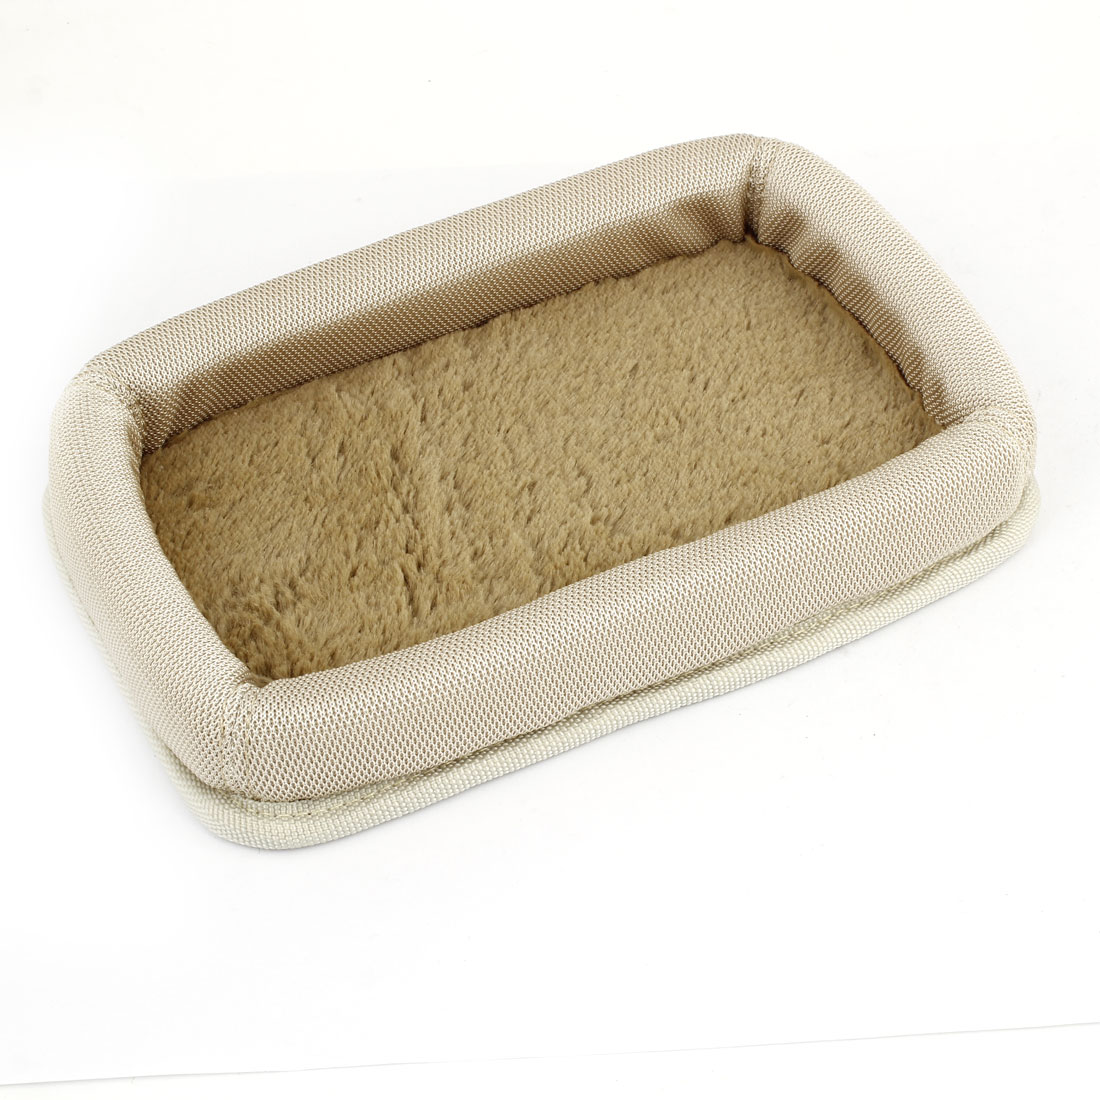 Beige Nylon Plush Car Skid Proof Storage Box Phone Case Sundry Holder